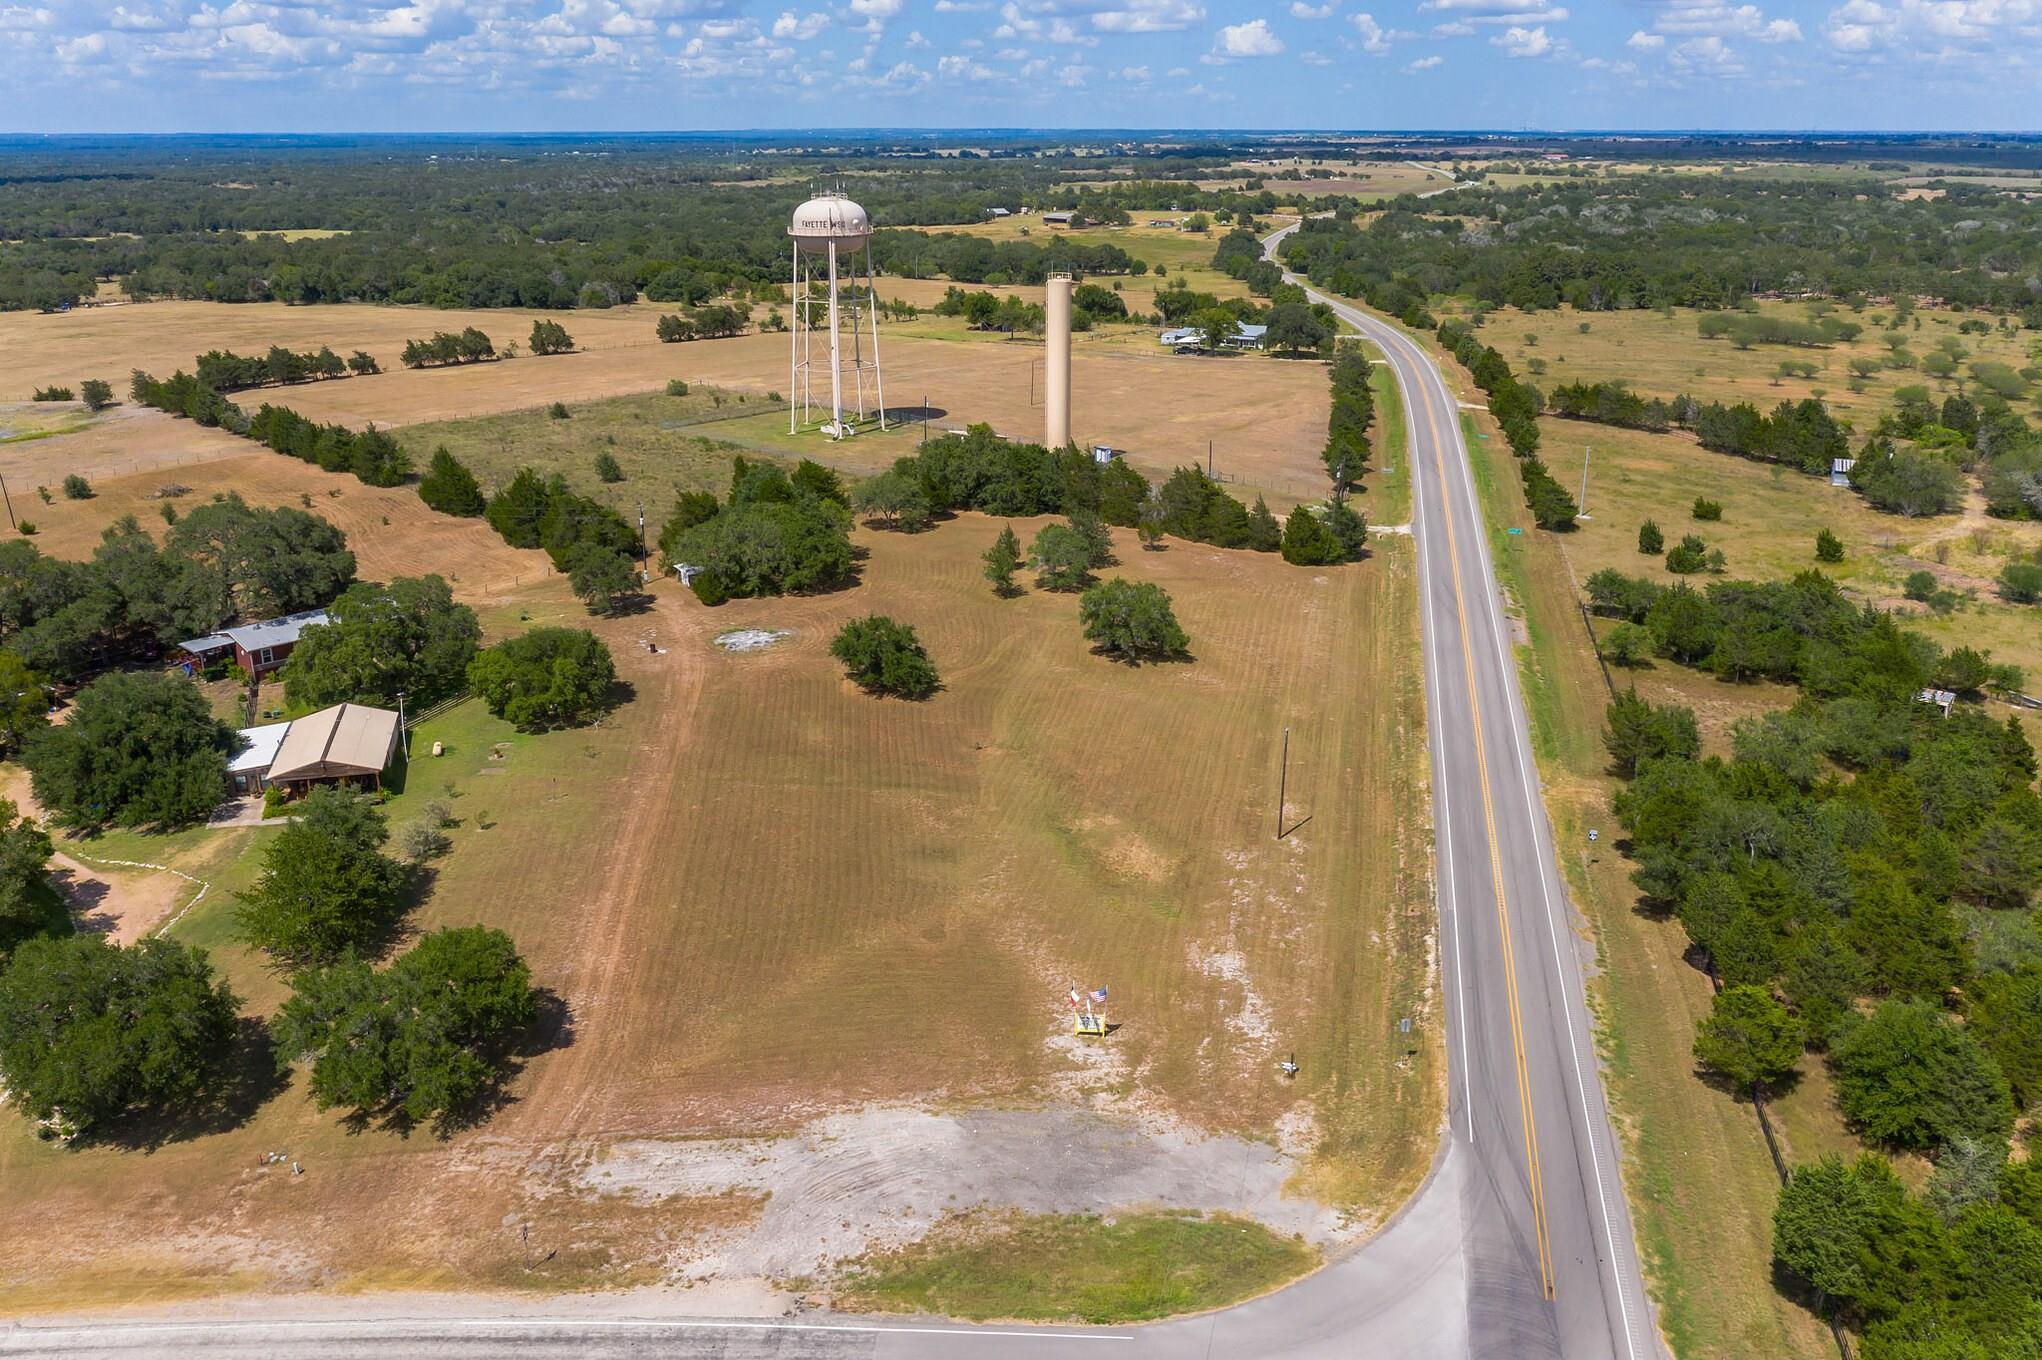 000 FM 2237 Property Photo - Muldoon, TX real estate listing